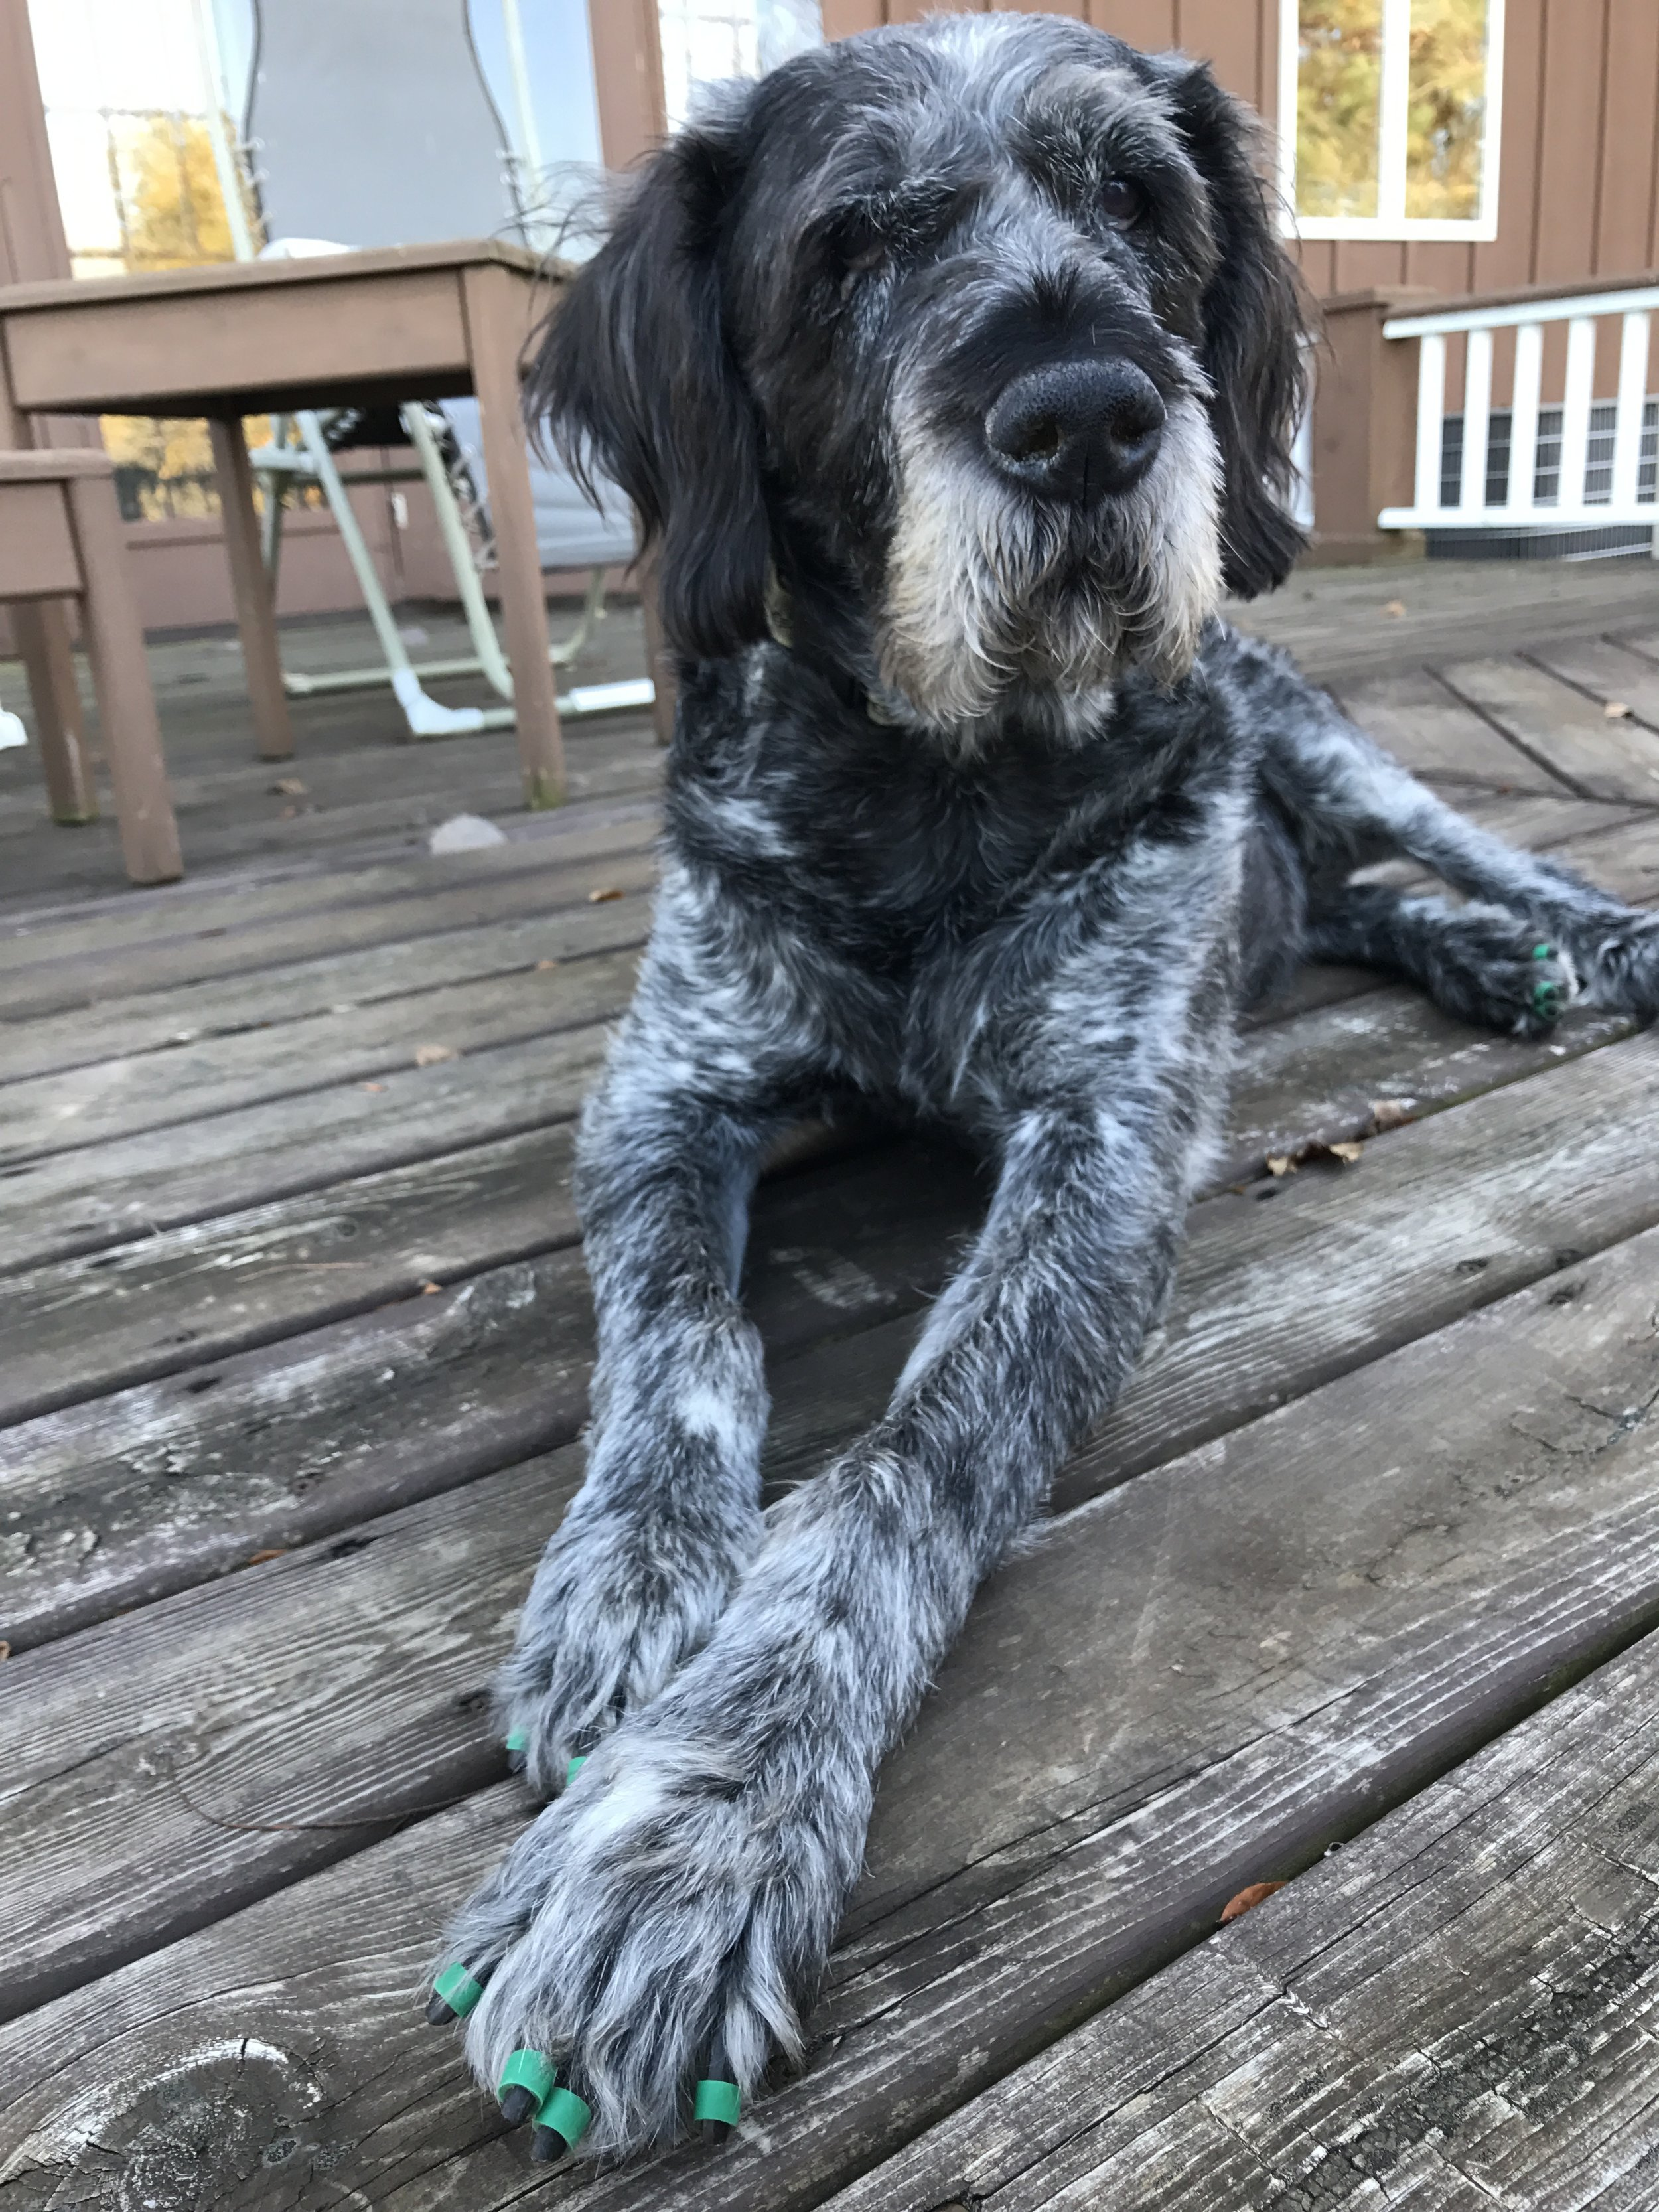 Toe grips help senior dogs with traction.